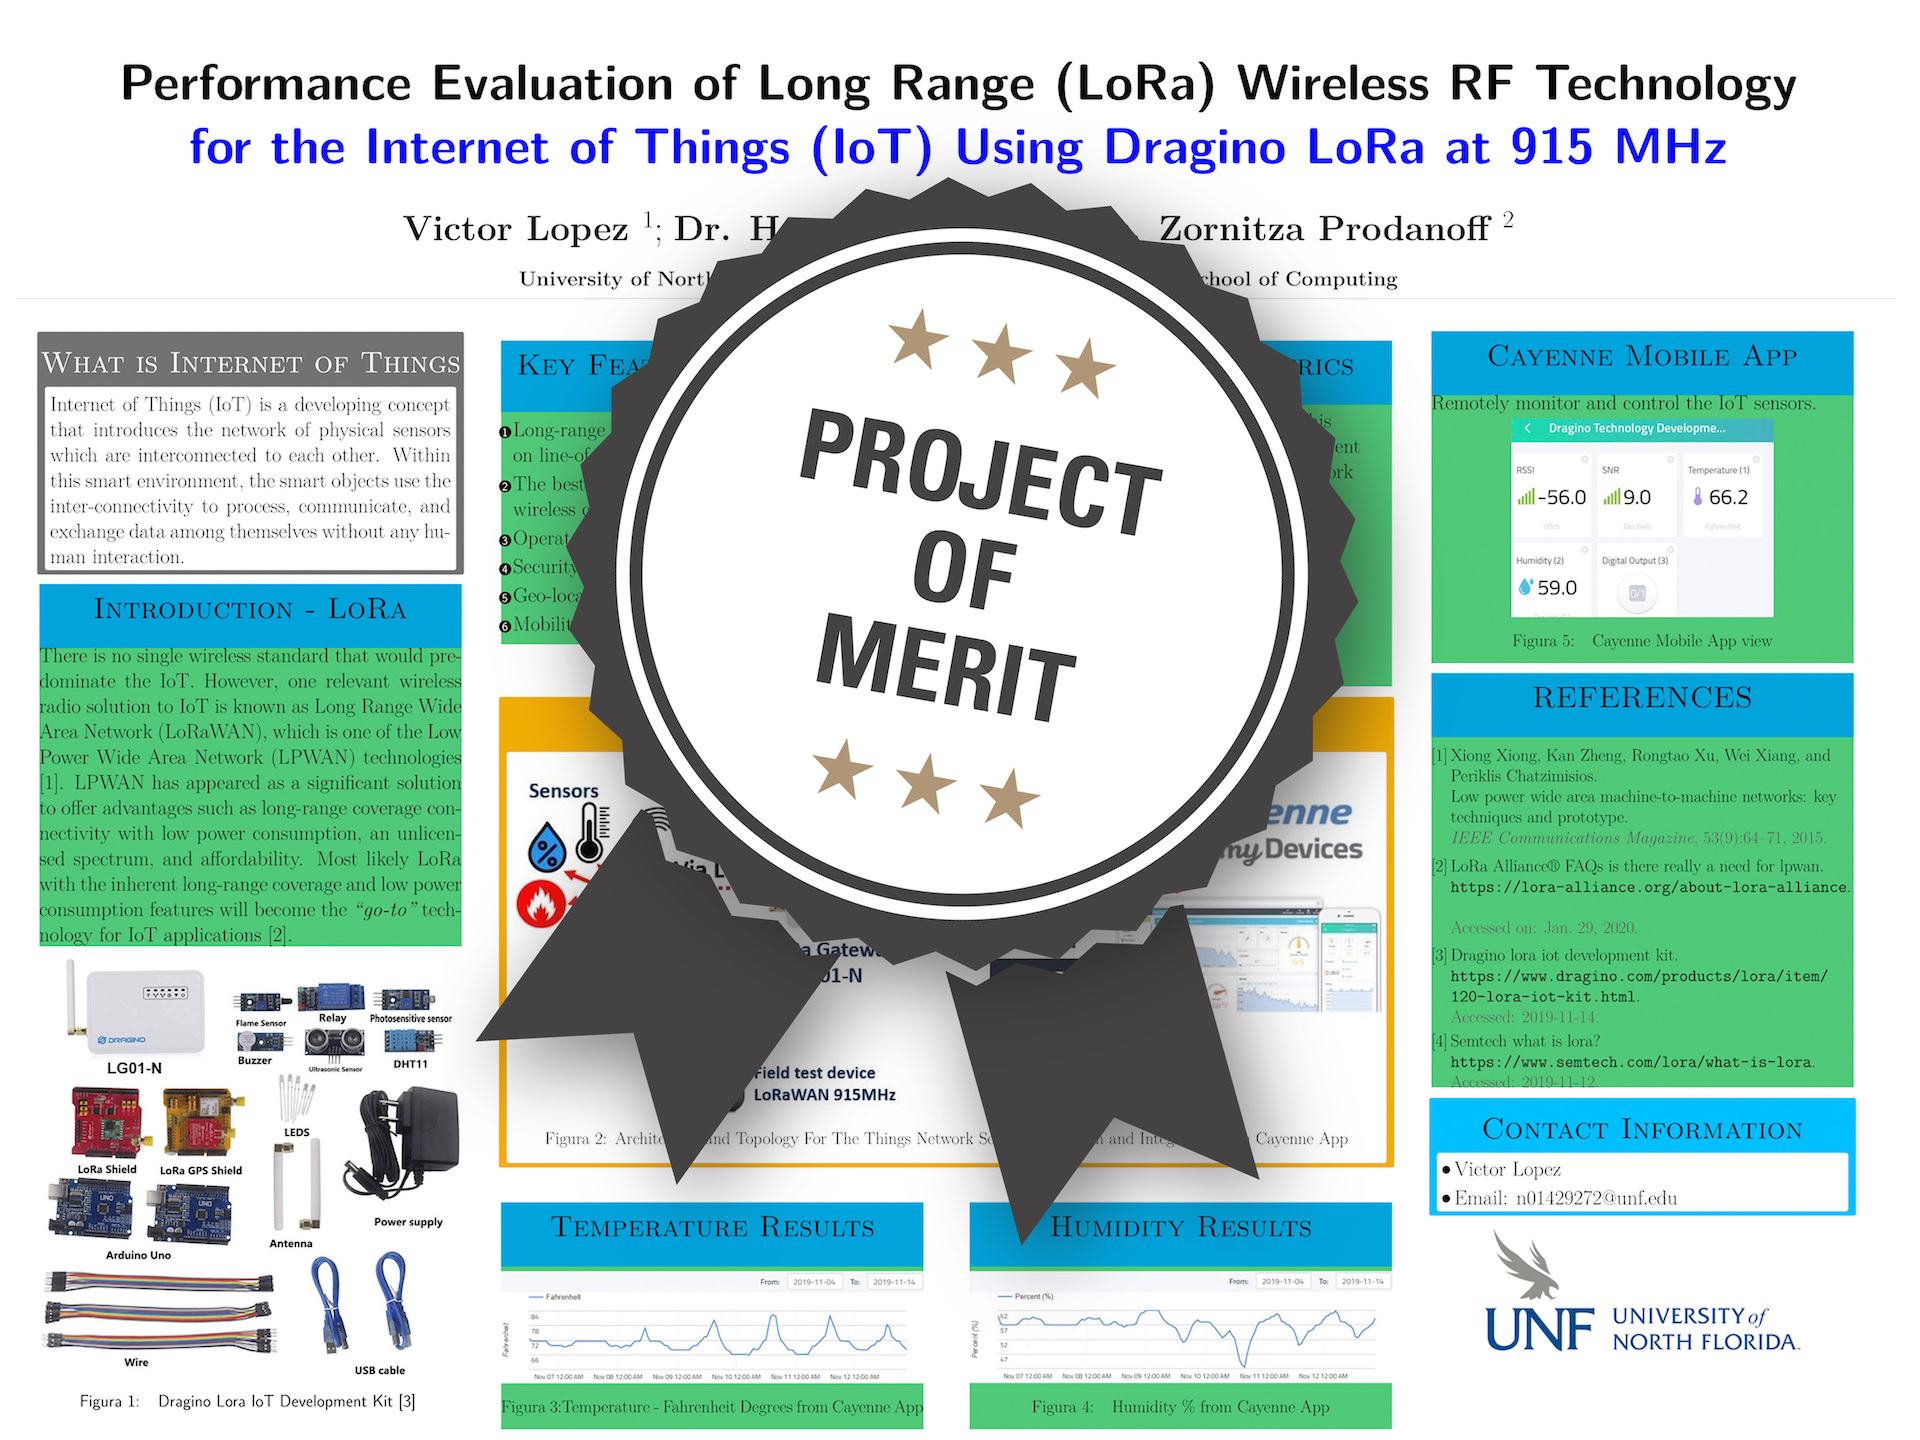 Performance Evaluation of Long Range (LoRa) Wireless RF Technology for the Internet of Things (IoT) Using Dragino LoRa at 915 MHz Project of Merit poster